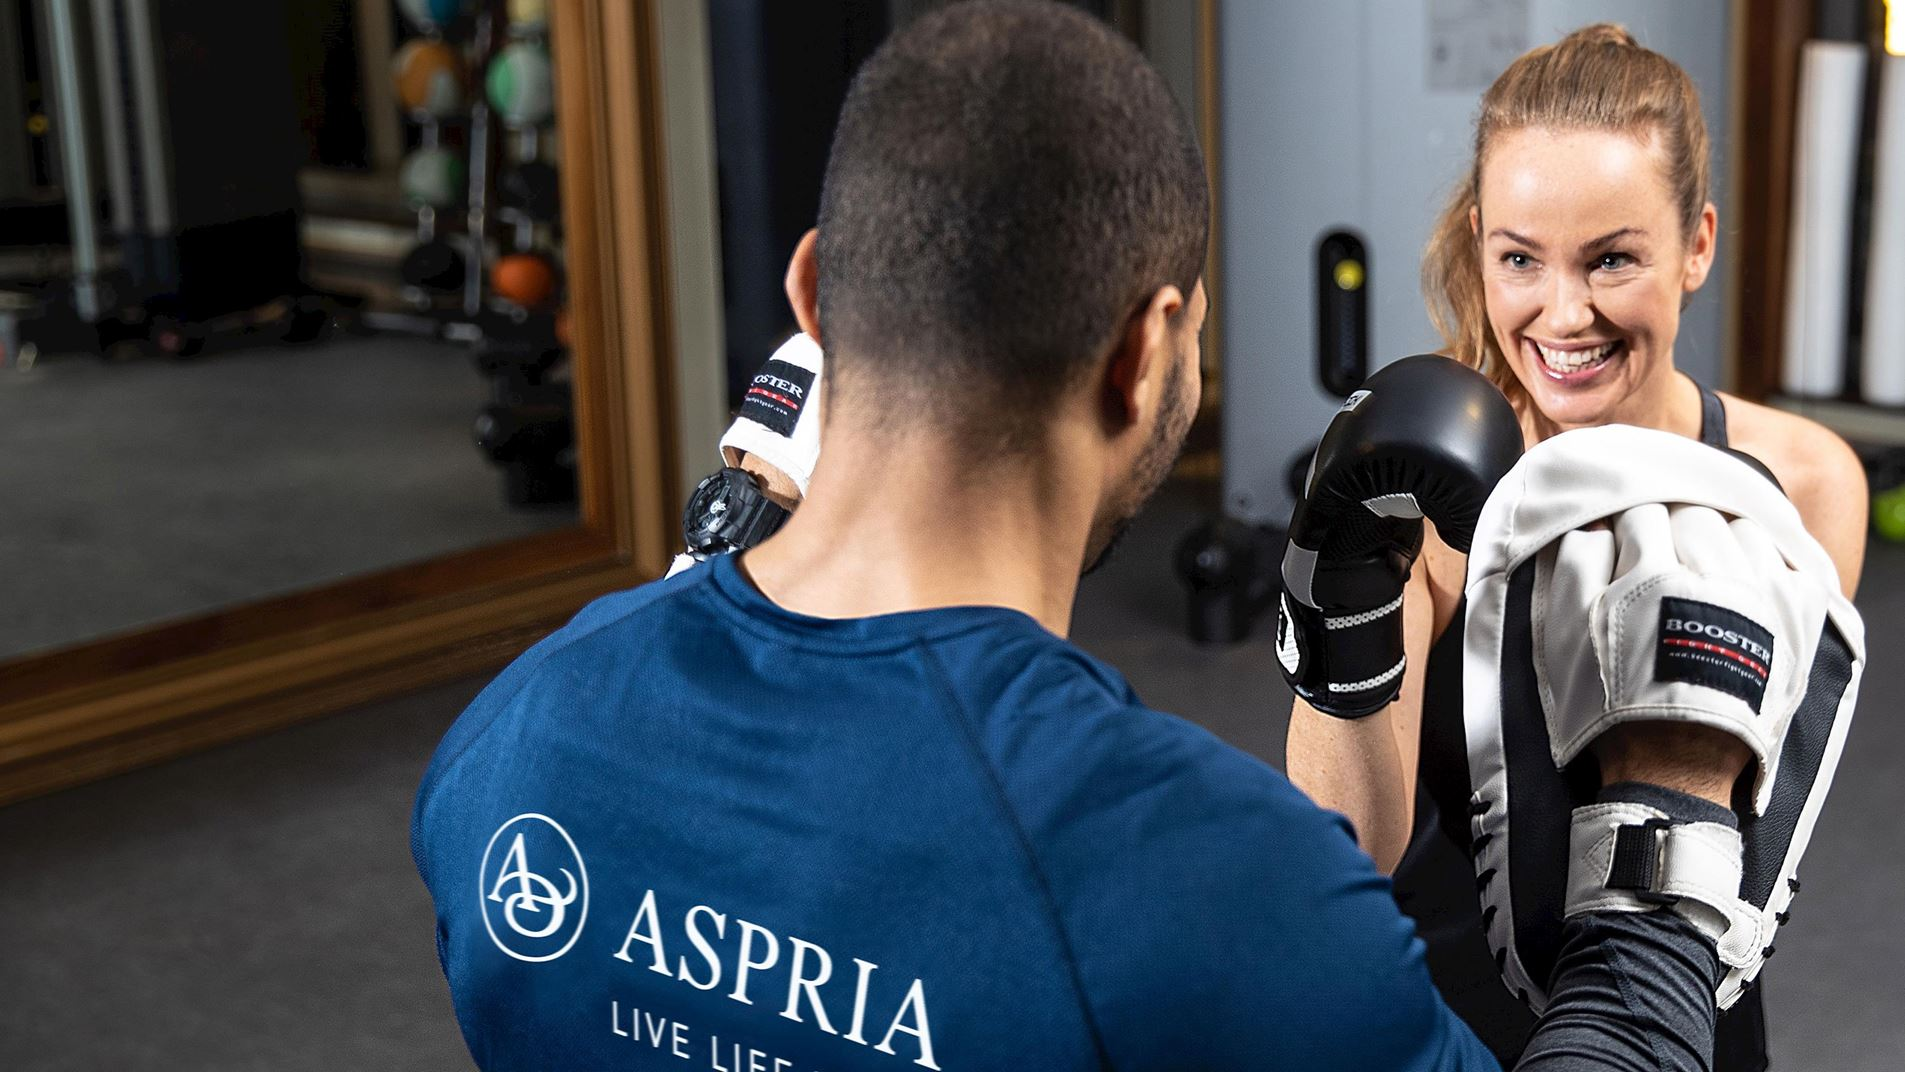 Aspria Sports, Spa and Wellness Clubs in Hamburg